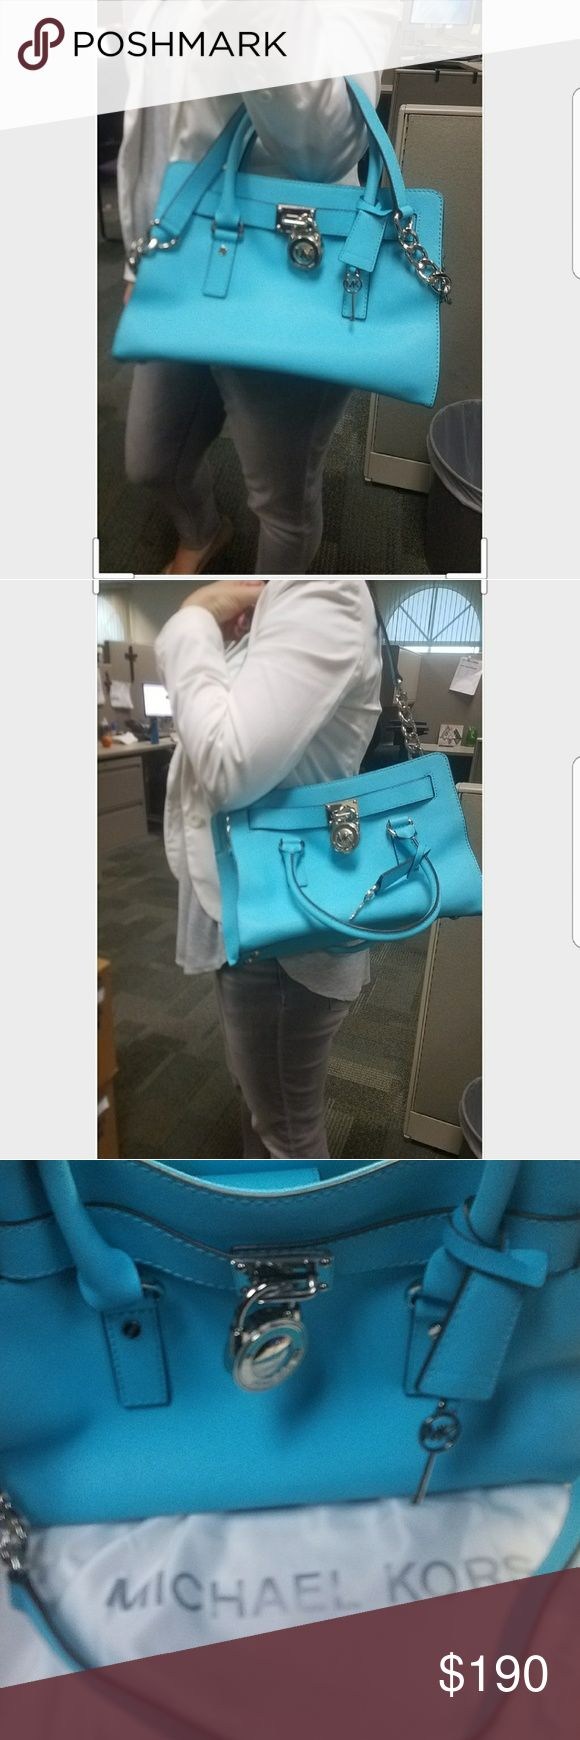 """Studio Hamilton Saffiano Leather East West Satchel Studio Hamilton Saffiano Leather East West Satchel Beautiful ocean blue Michael Kors handbag.  Perfect for spring and summer. Worn 1 time. Very good condition. No scratches or stains inside and/or outside. 12.25""""W X 9""""H X 5.25""""D Michael Kors Bags Satchels"""